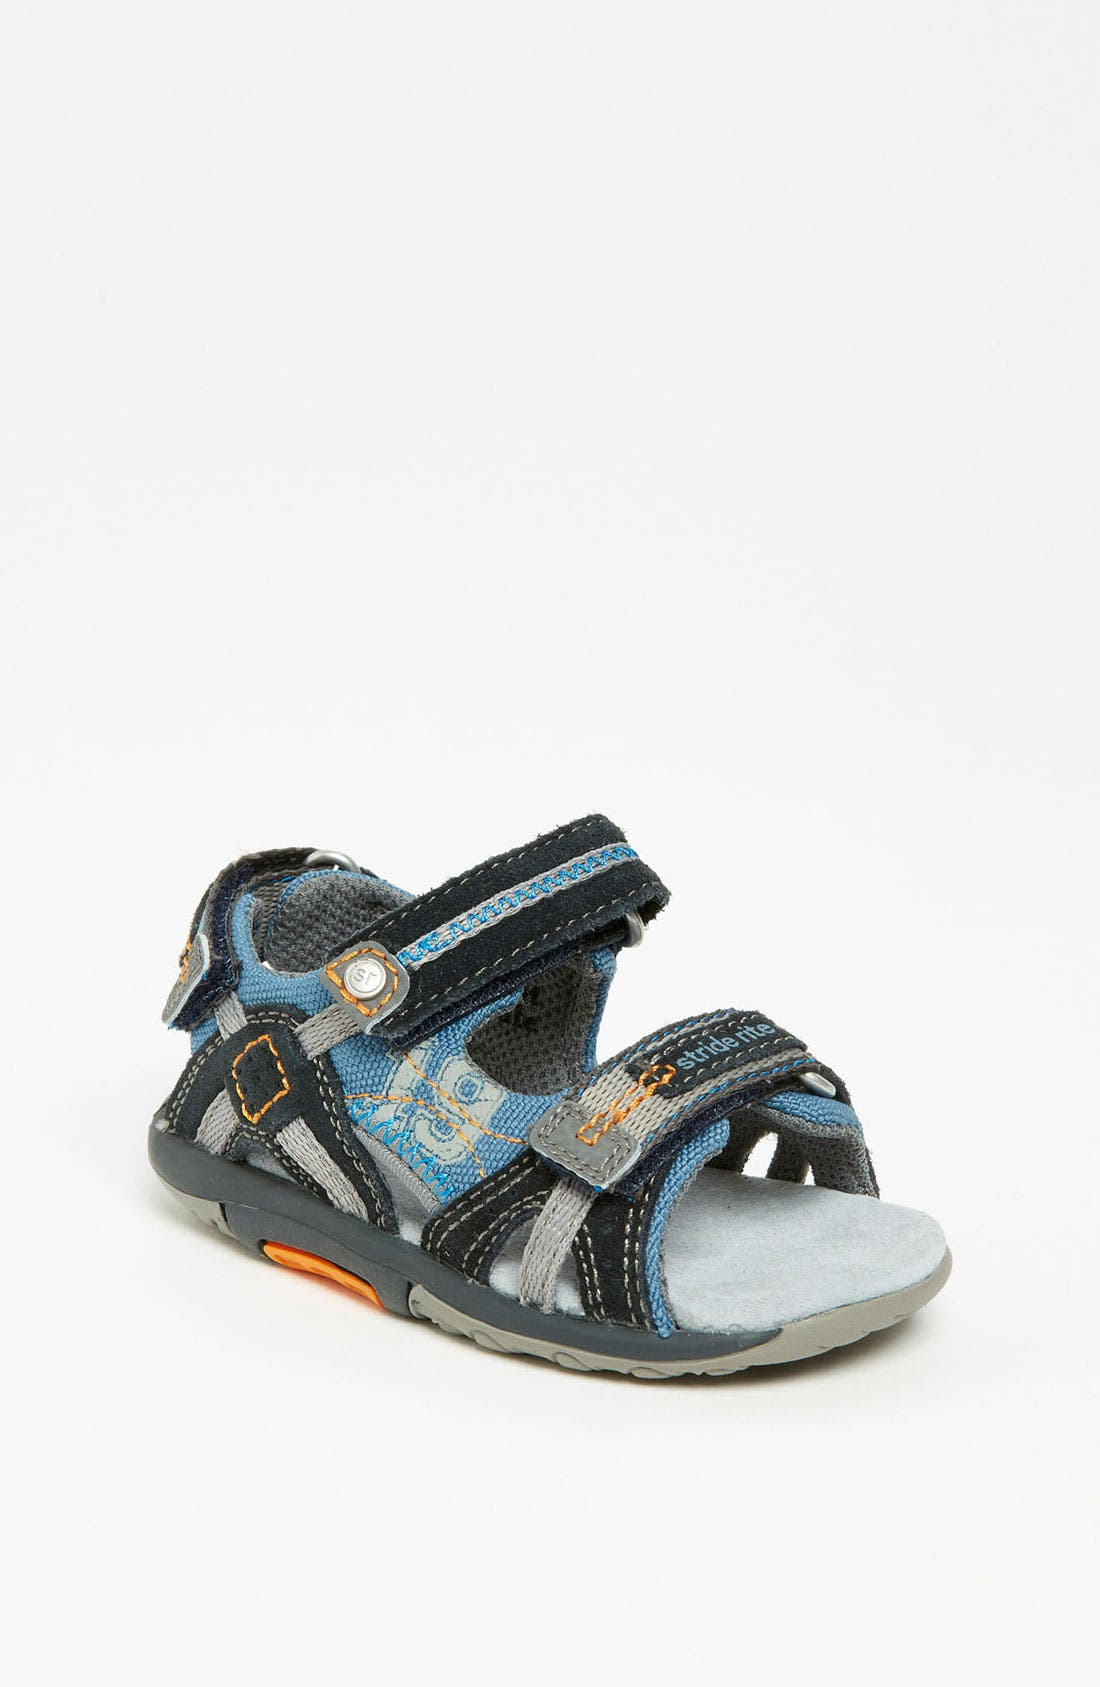 Alternate Image 1 Selected - Stride Rite 'Scooter' Sandal (Baby, Walker & Toddler)